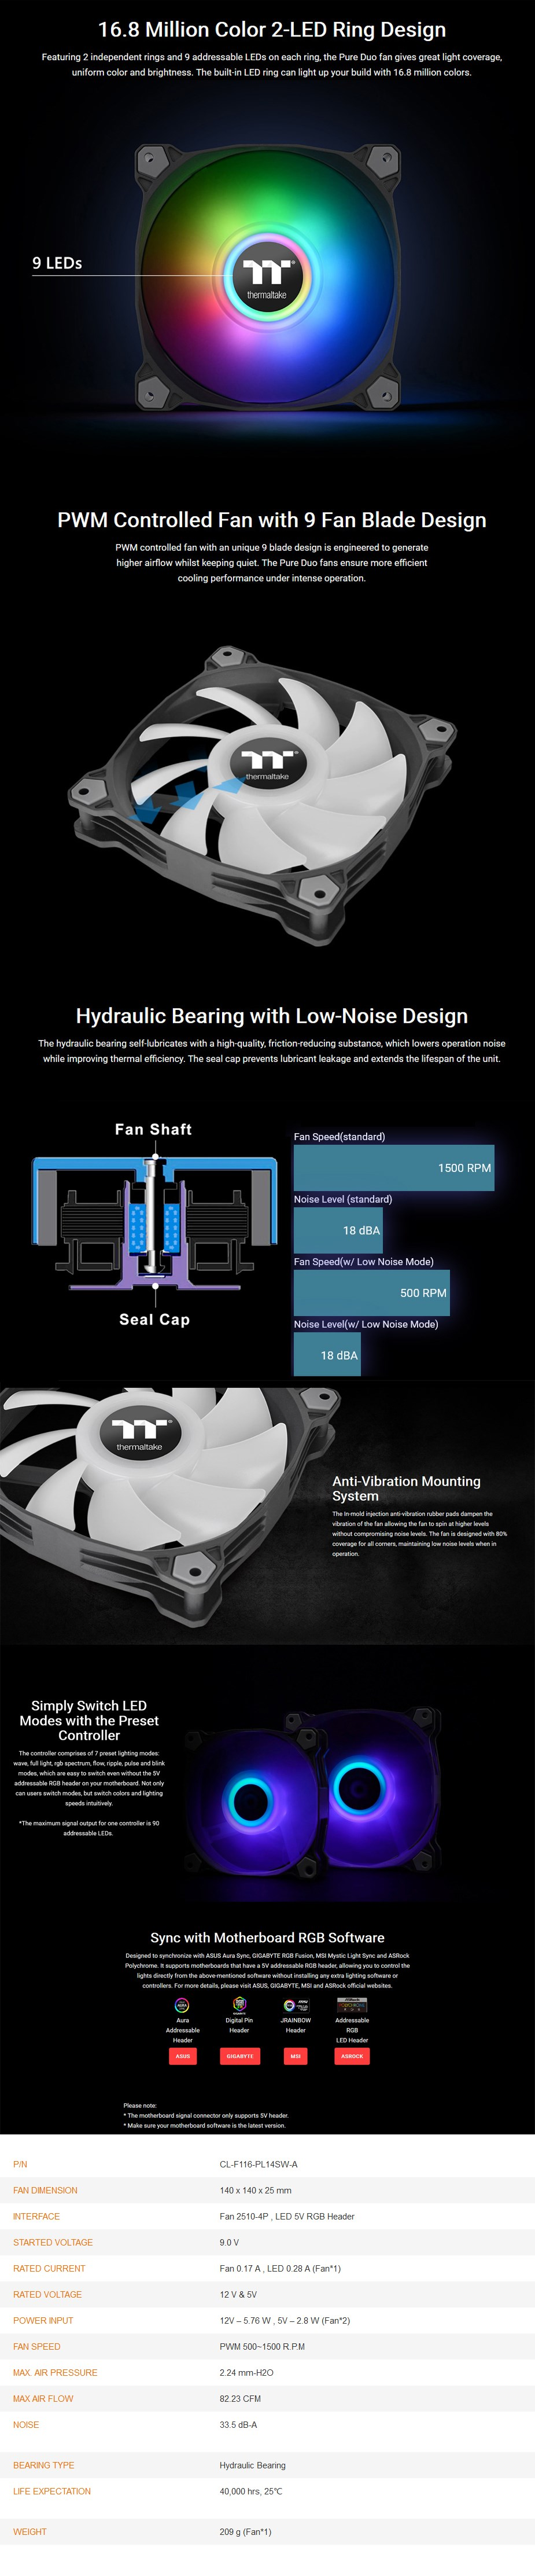 Thermaltake Pure Duo 14 140mm ARGB Radiator Fans - 2 Pack - Overview 1